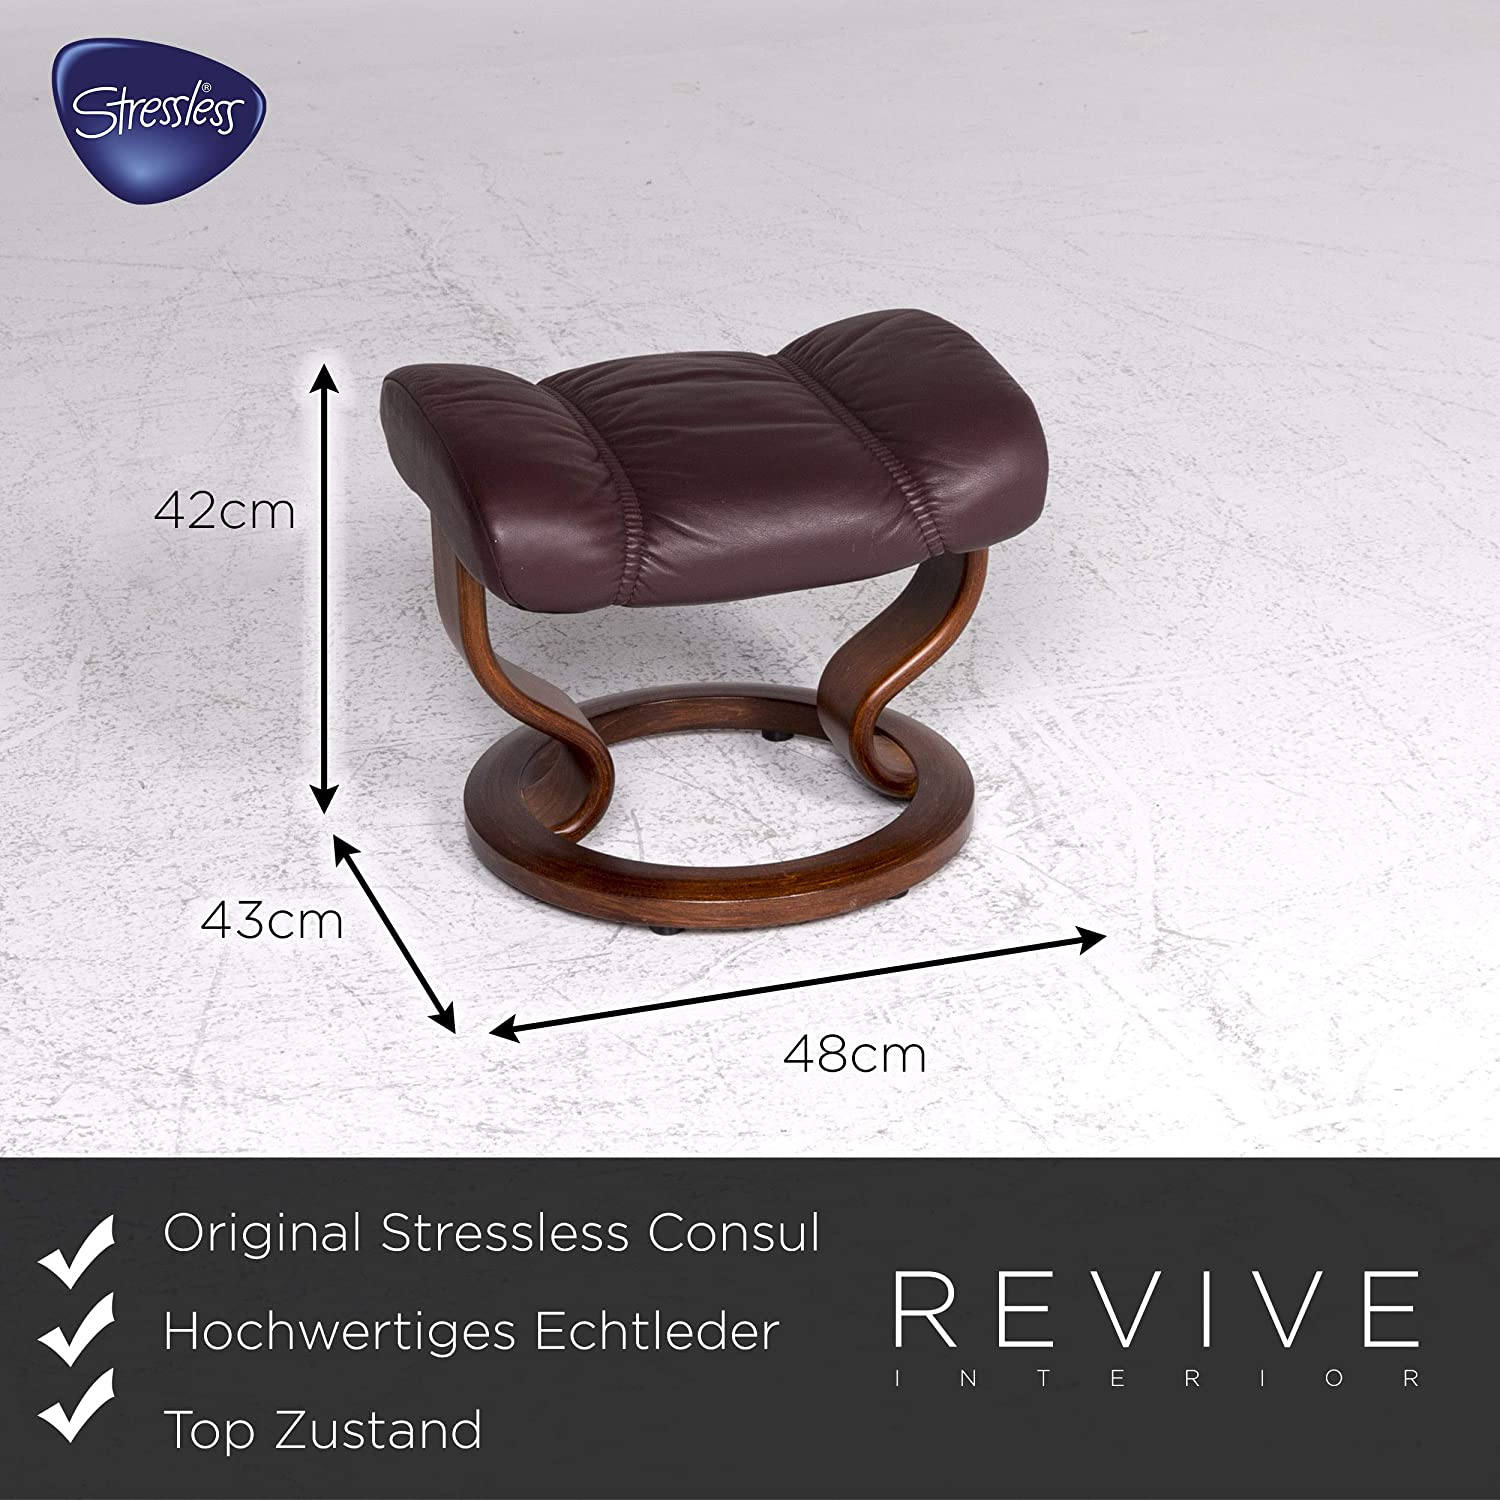 Stressless Consul Designer Leather Armchair Stool Red Brown ...